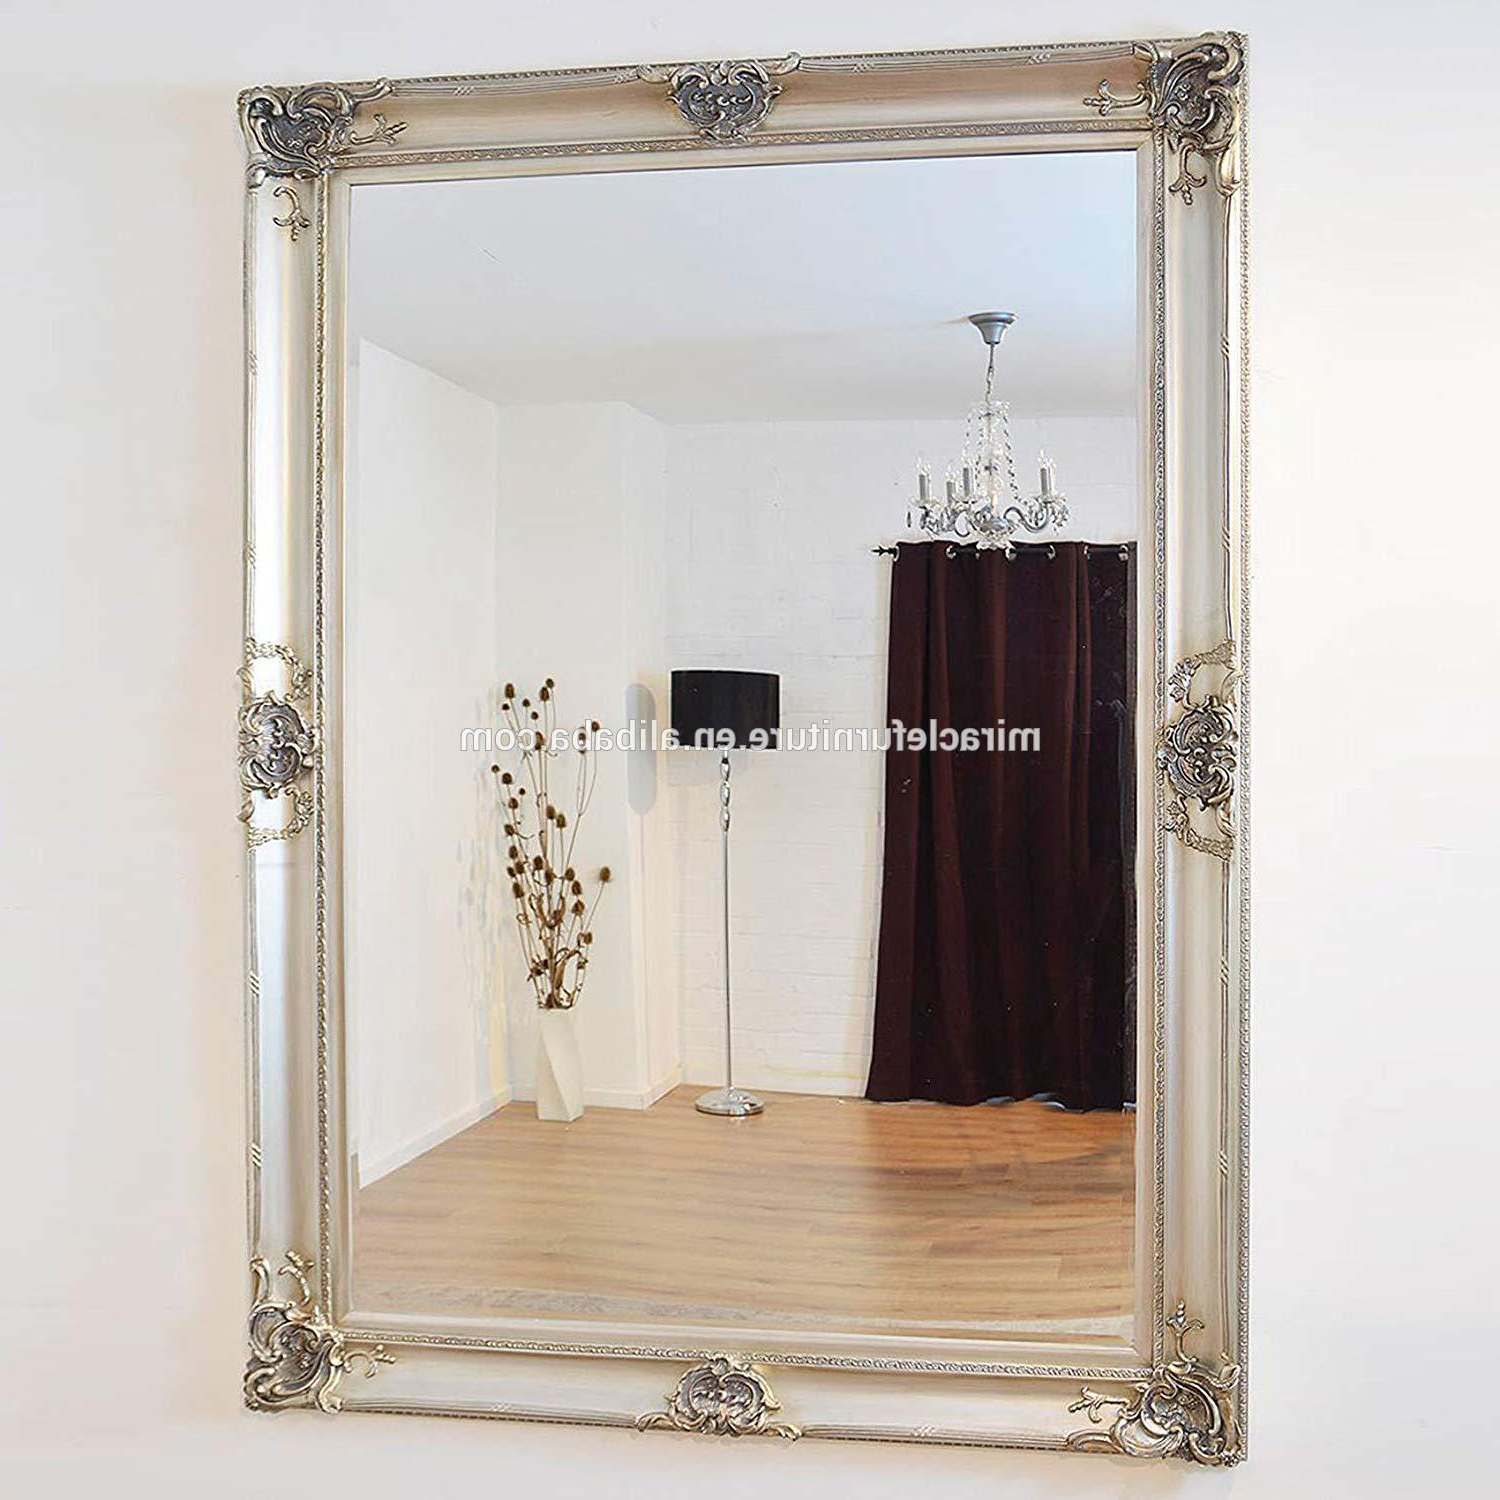 Large Silver Decorative Ornate Pu Resin Frame Unique Wall Mirror – Buy  Resin Frame Wall Mirror Decorative,unique Wall Mirrors Decorative,hotel  Project With Regard To Recent Unique Wall Mirrors (Gallery 5 of 20)